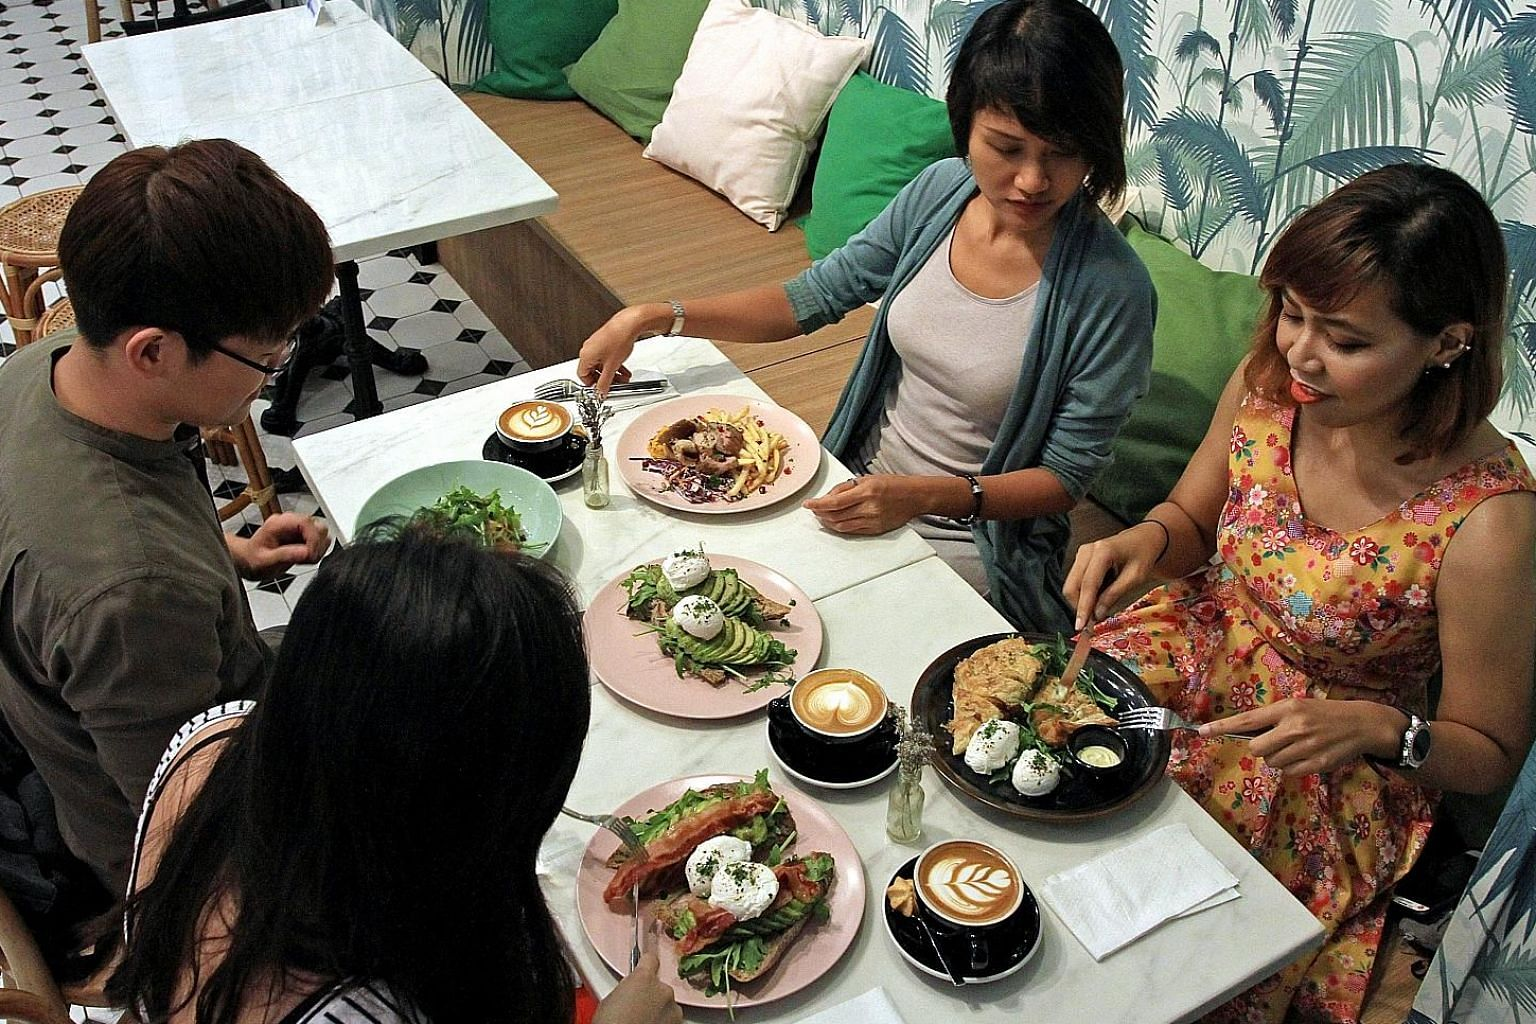 (Clockwise from bottom left) Supply operations executive Jacqueline Chua, 26, digital marketing executive Terry Pang, 26, musician Salima Nadira, 27, and business intelligence executive Marliyana Amir, 26, having a meal together at Shop Wonderland in